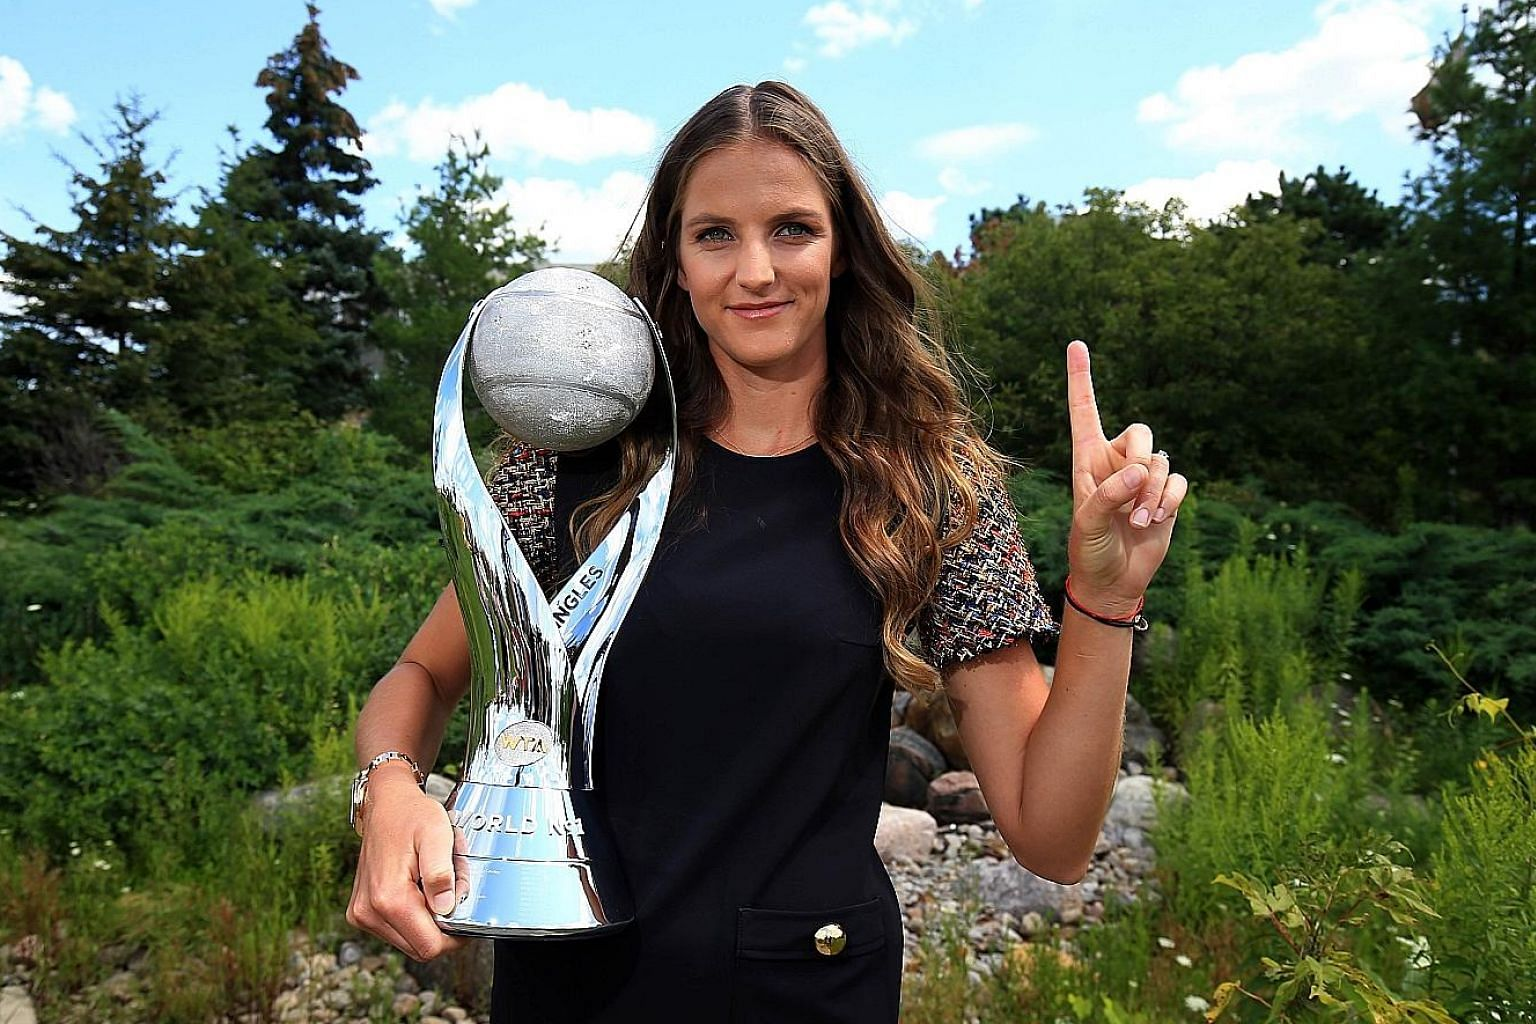 Karolina Pliskova of the Czech Republic with the WTA world No. 1 trophy in Toronto last Sunday. The Rogers Cup will be her first appearance on court since her elevation last month to the top spot, despite never having won a Grand Slam tournament.